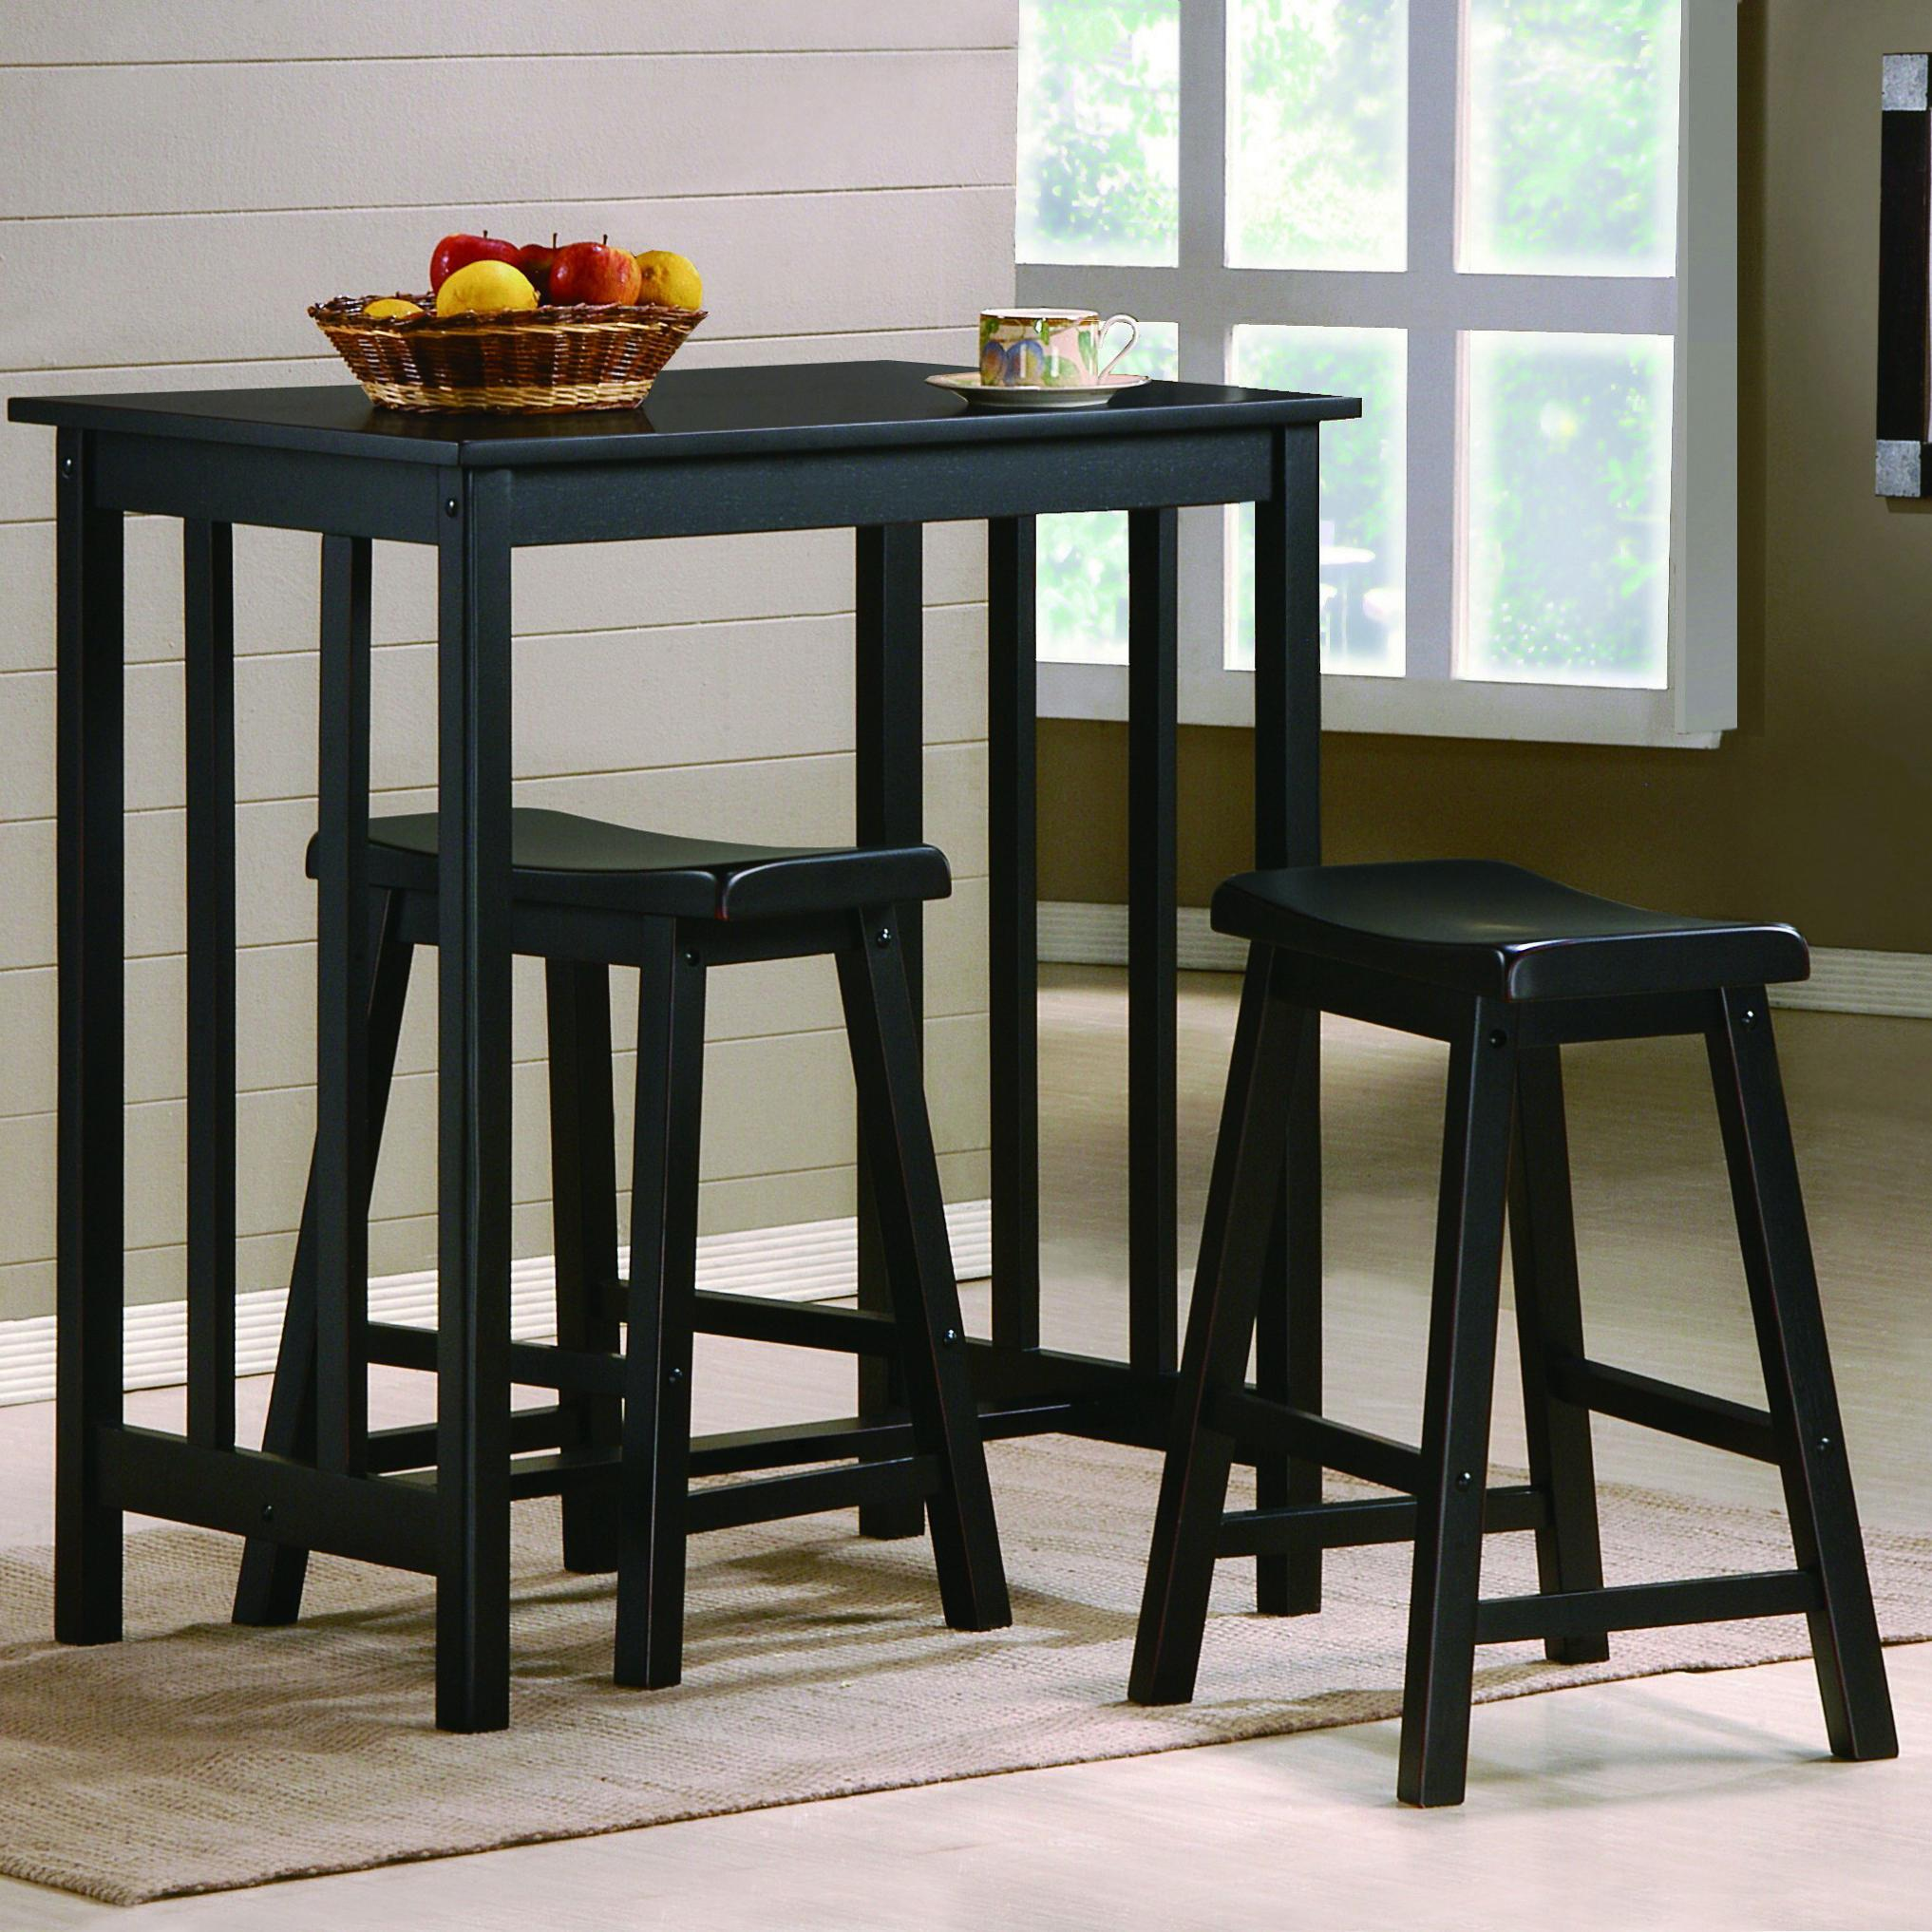 Crown Mark Dina SET Piece Counter Height Table Stool Set - Counter height table for two